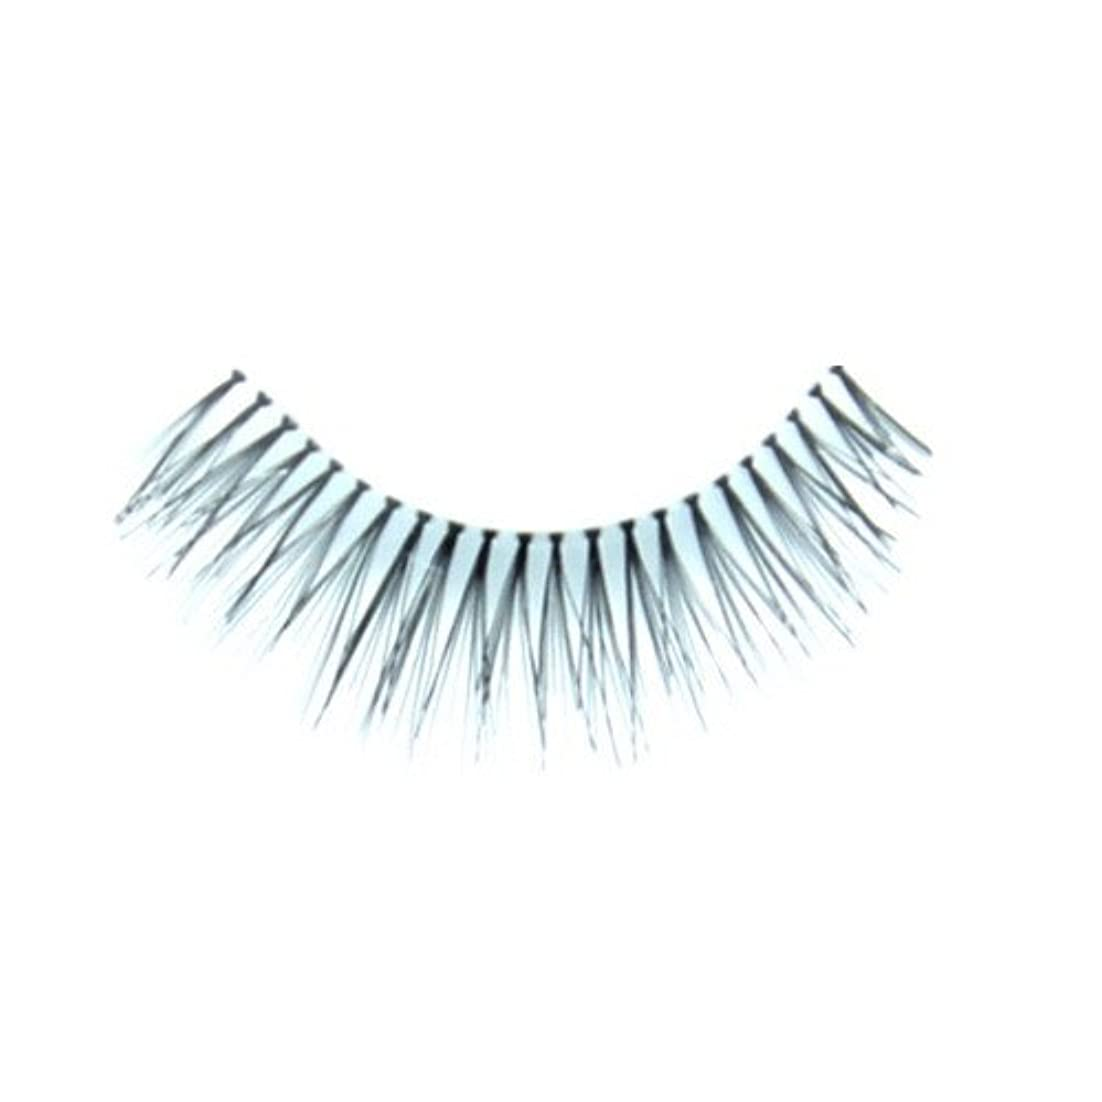 ベース不満別々に(3 Pack) CHERRY BLOSSOM False Eyelashes 2 - CBFL747M (並行輸入品)